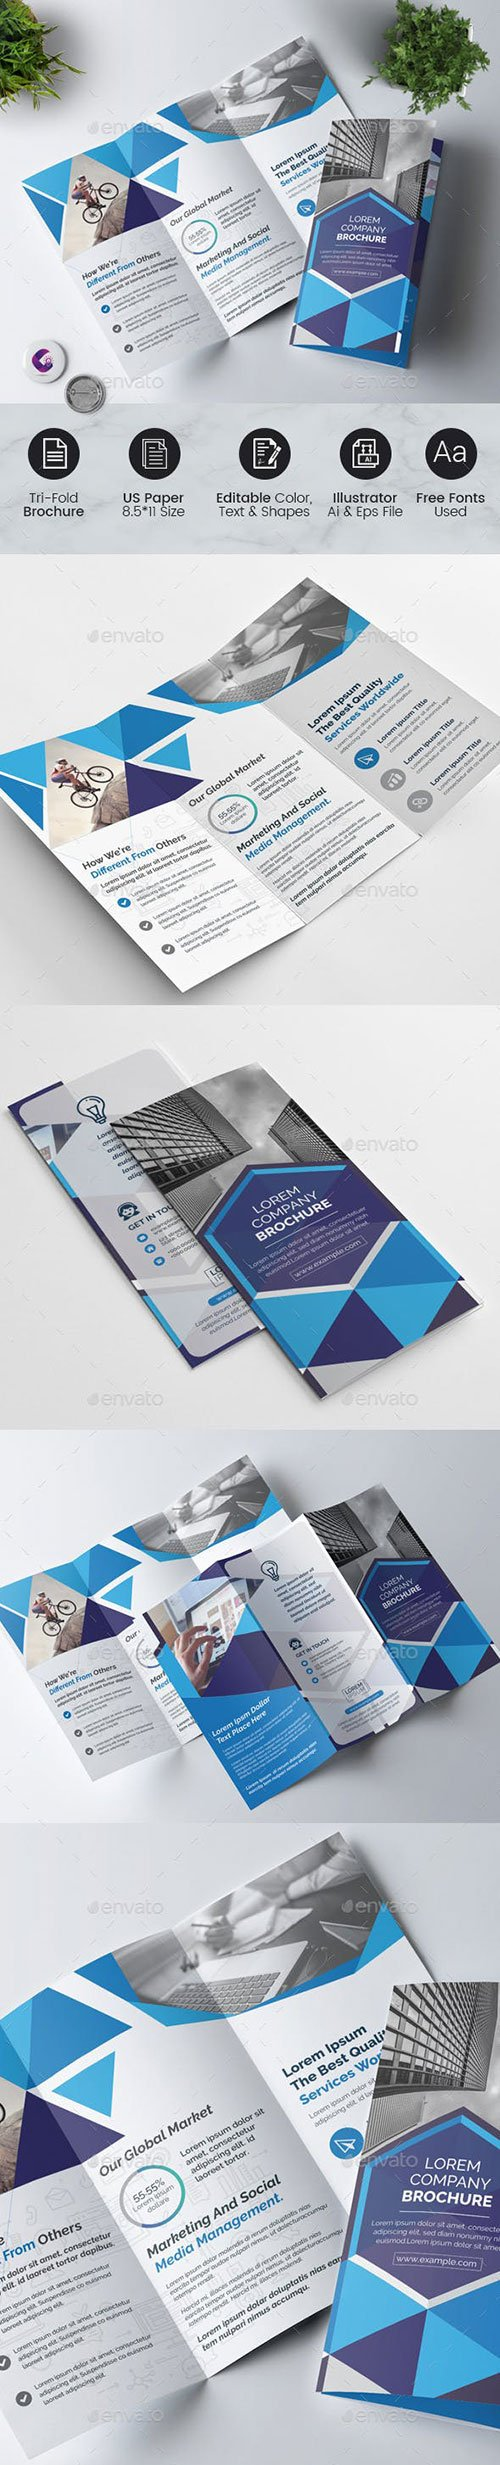 GraphicRiver - Geometric Tri-Fold Brochure 22568846